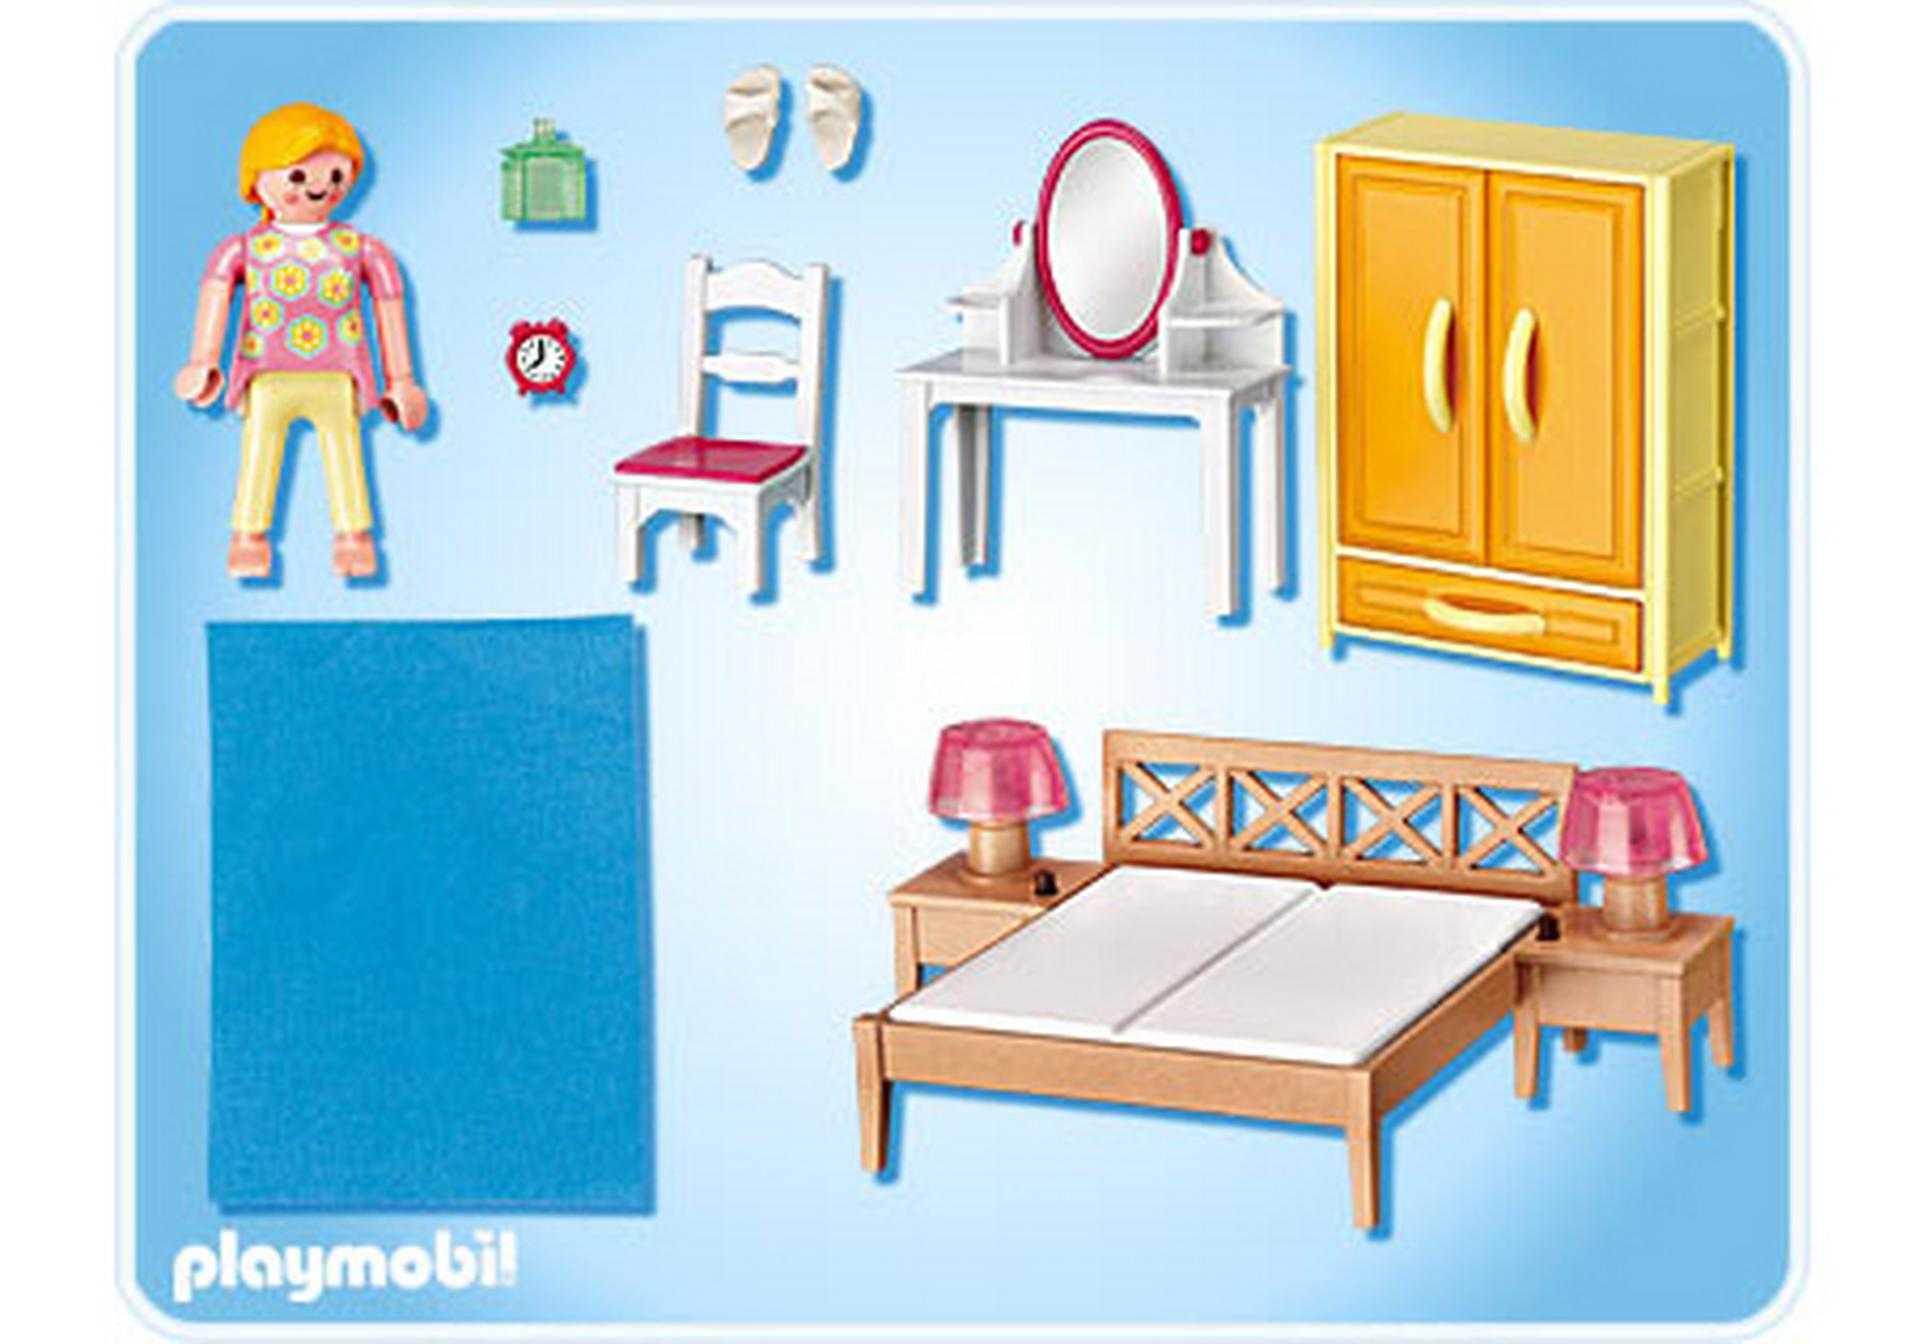 Chambre des parents avec coiffeuse 5331 a playmobil france - Chambre parents playmobil ...